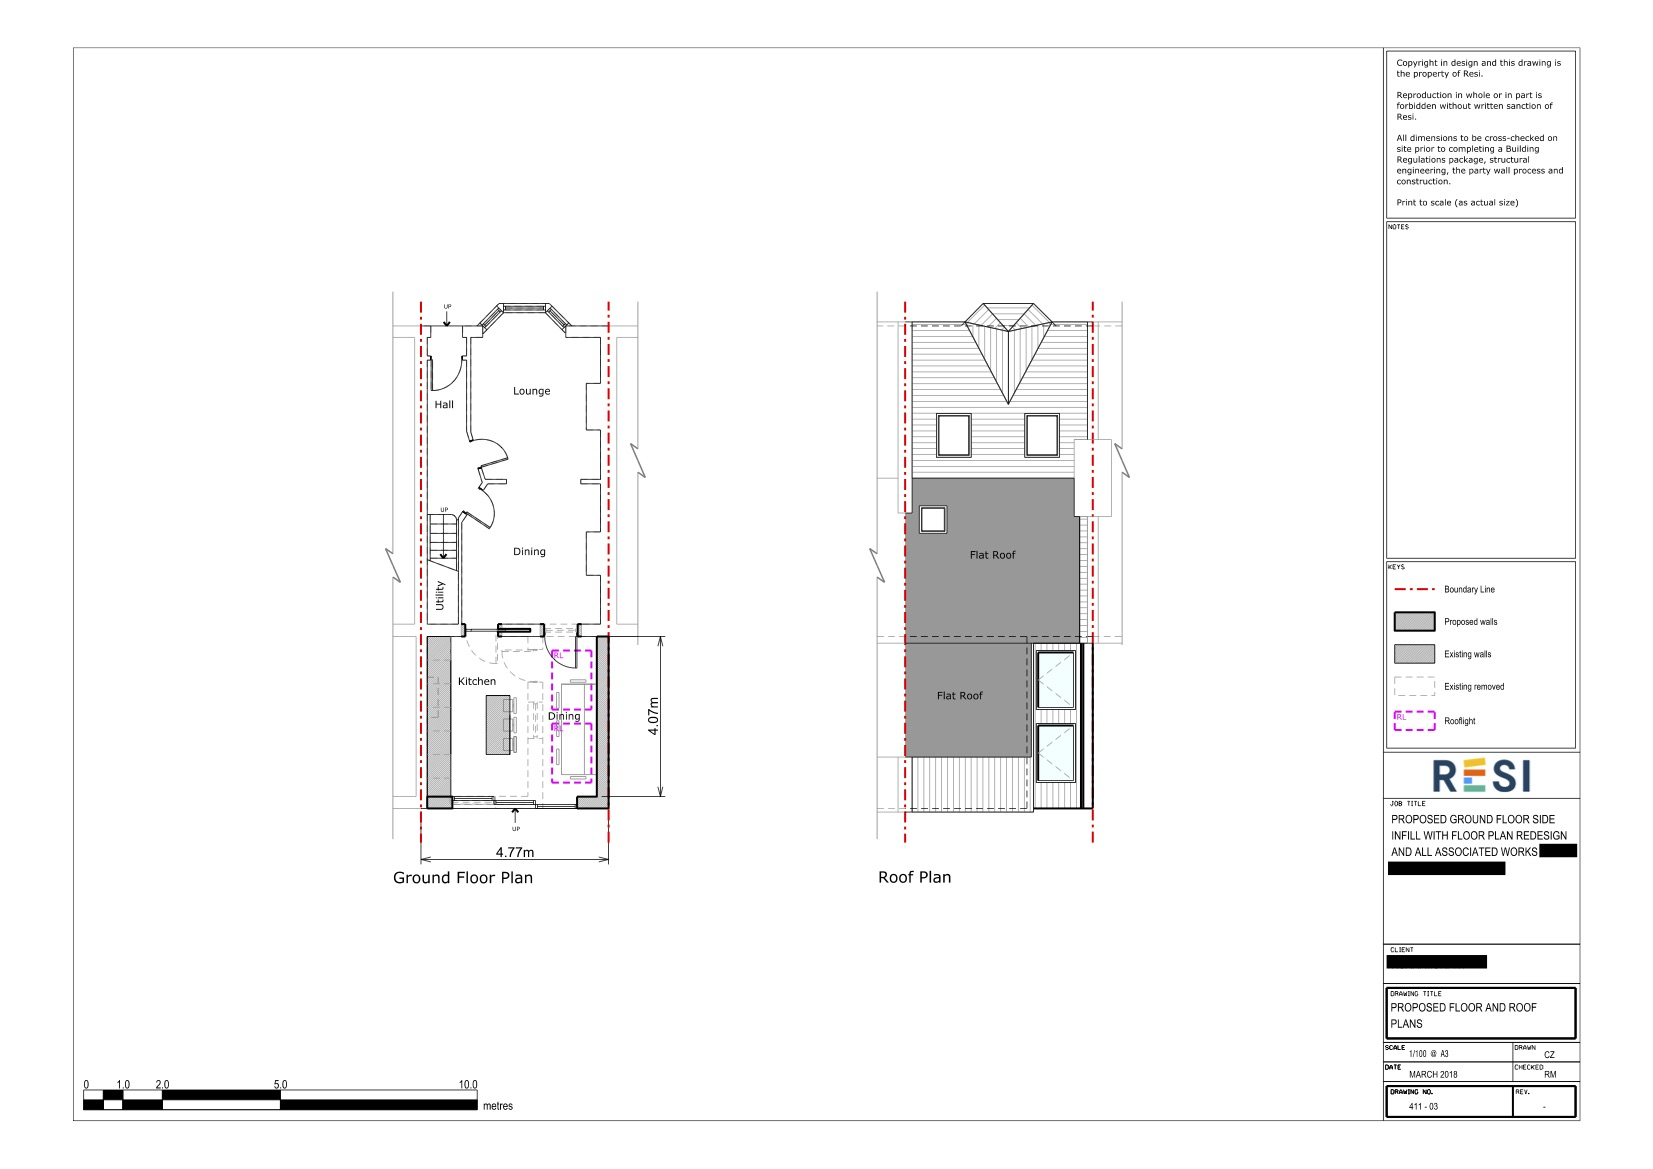 Architectural drawings 22   ground floor and roof plans